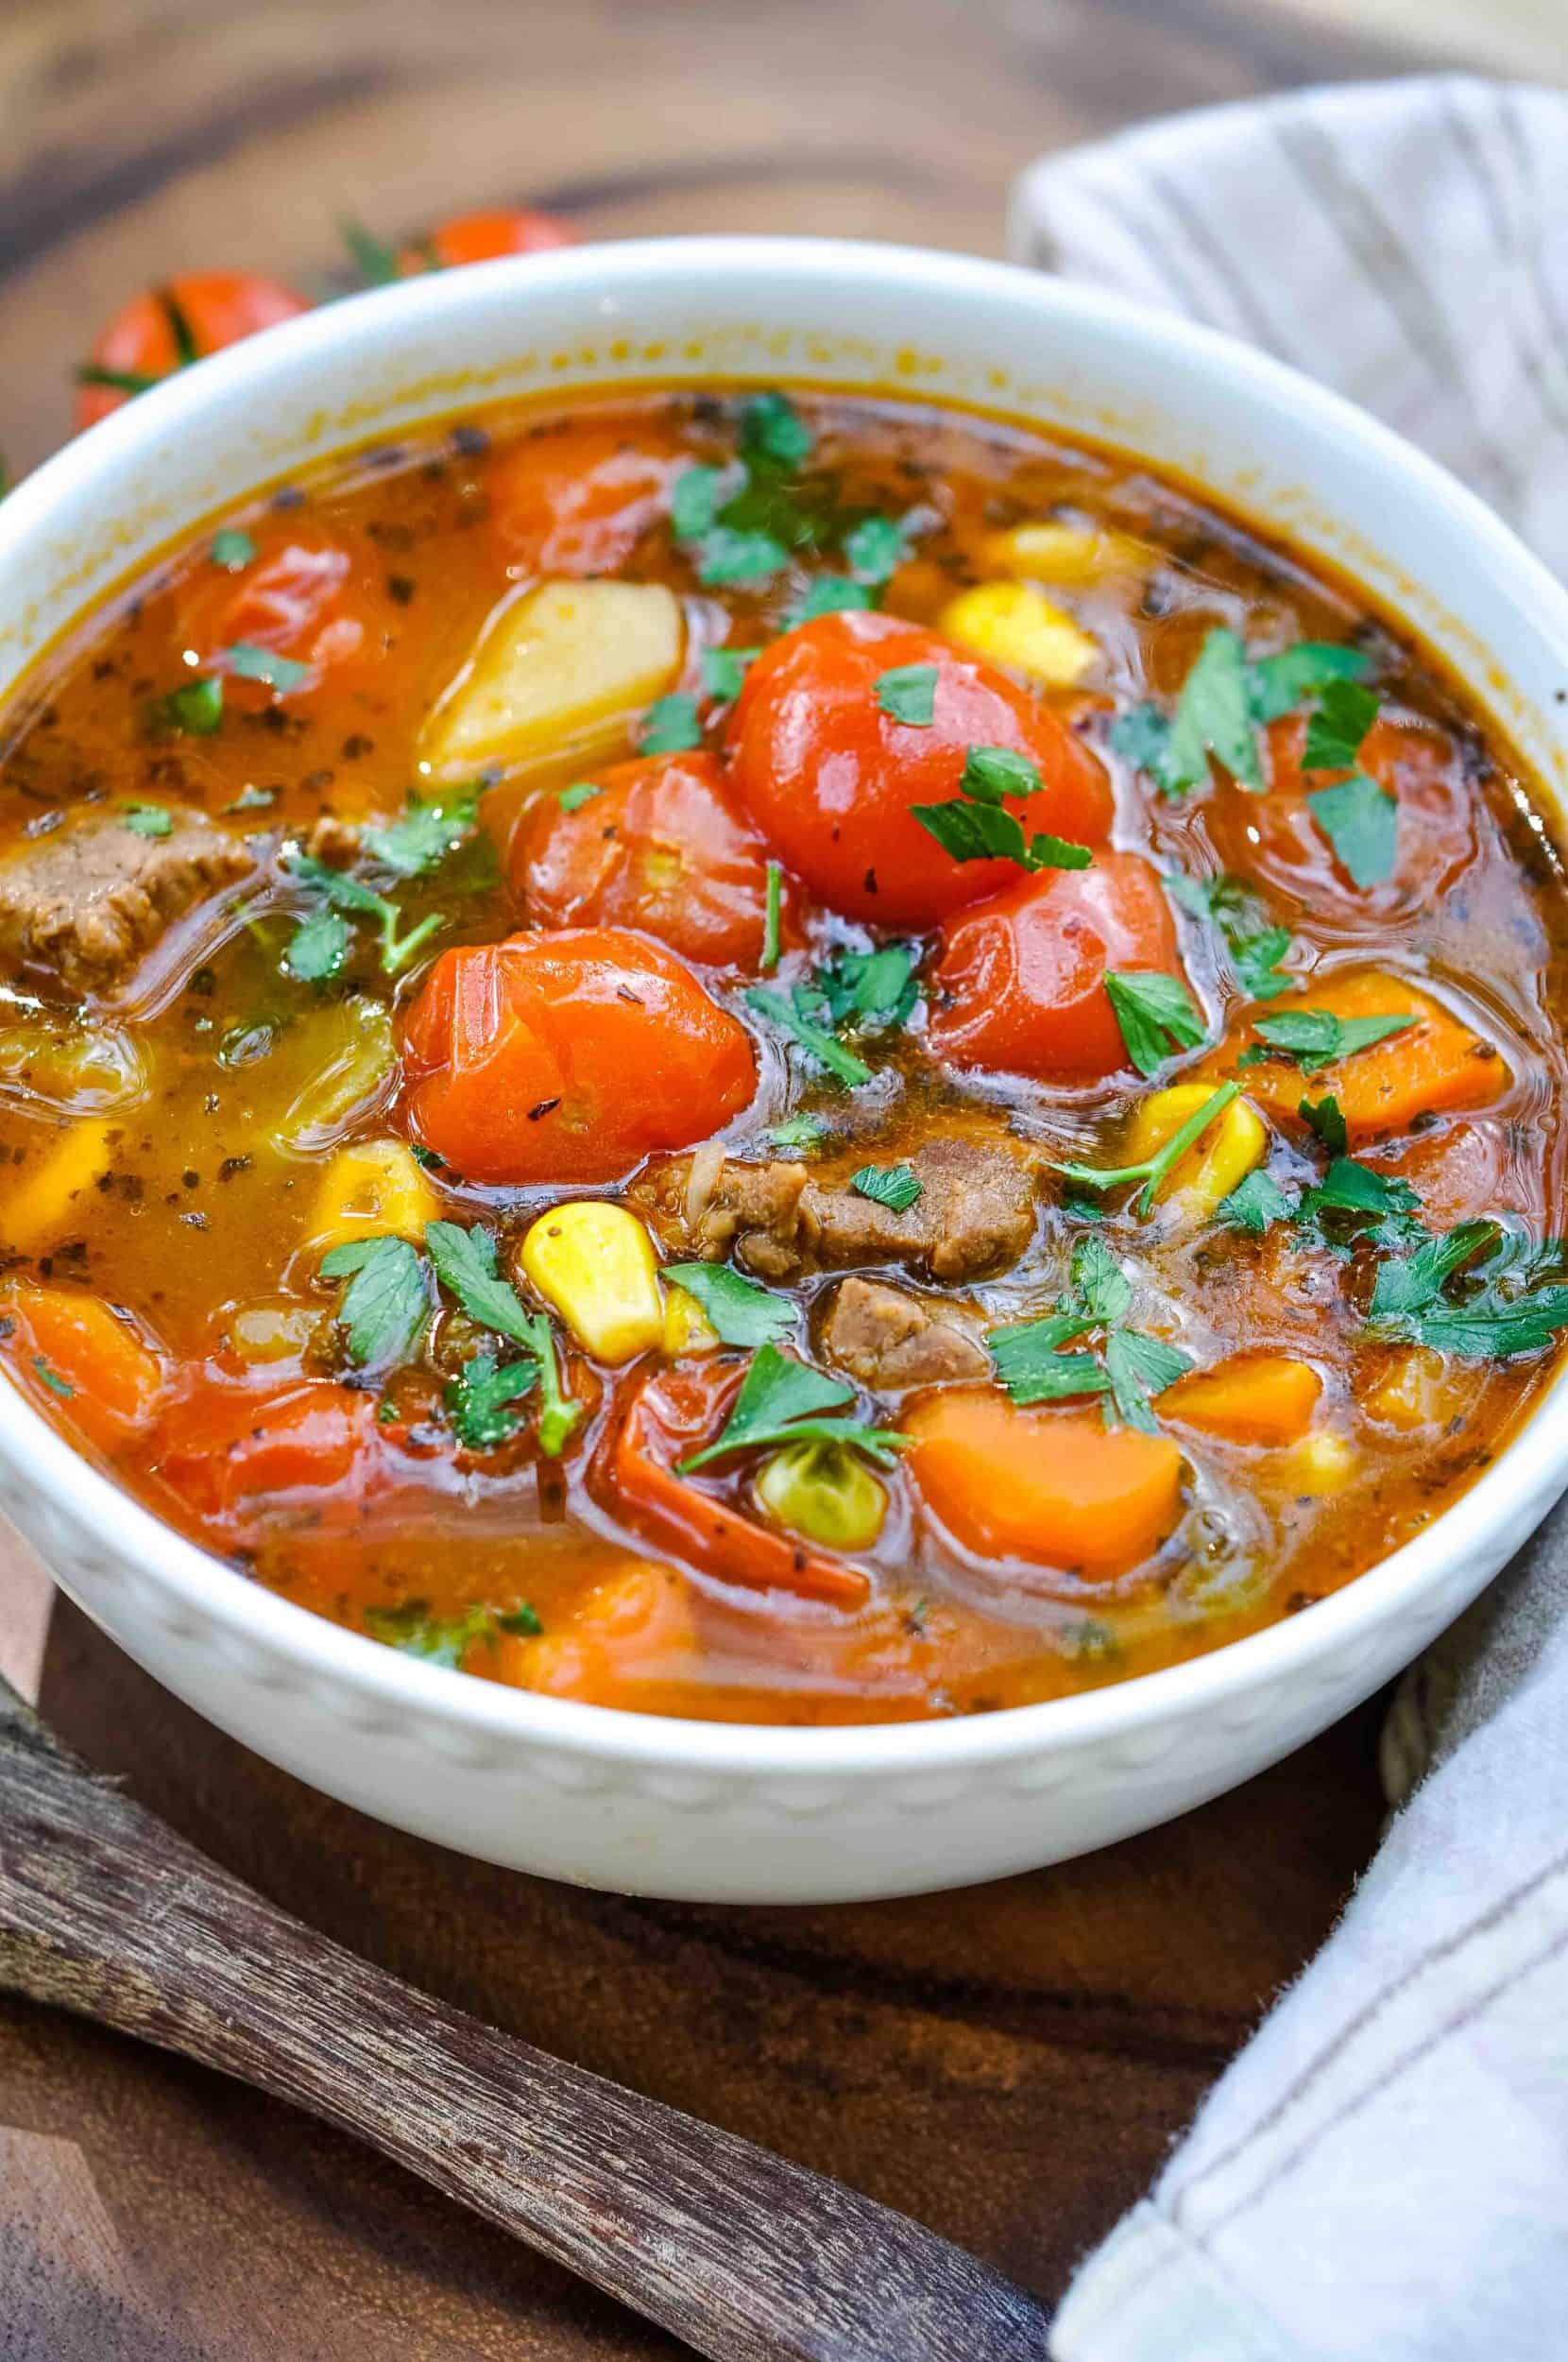 Made with tender chunks of beef, a variety of veggies and potatoes, plus super-sweet cherry tomatoes, this soup is cold weather comfort food at it's finest.